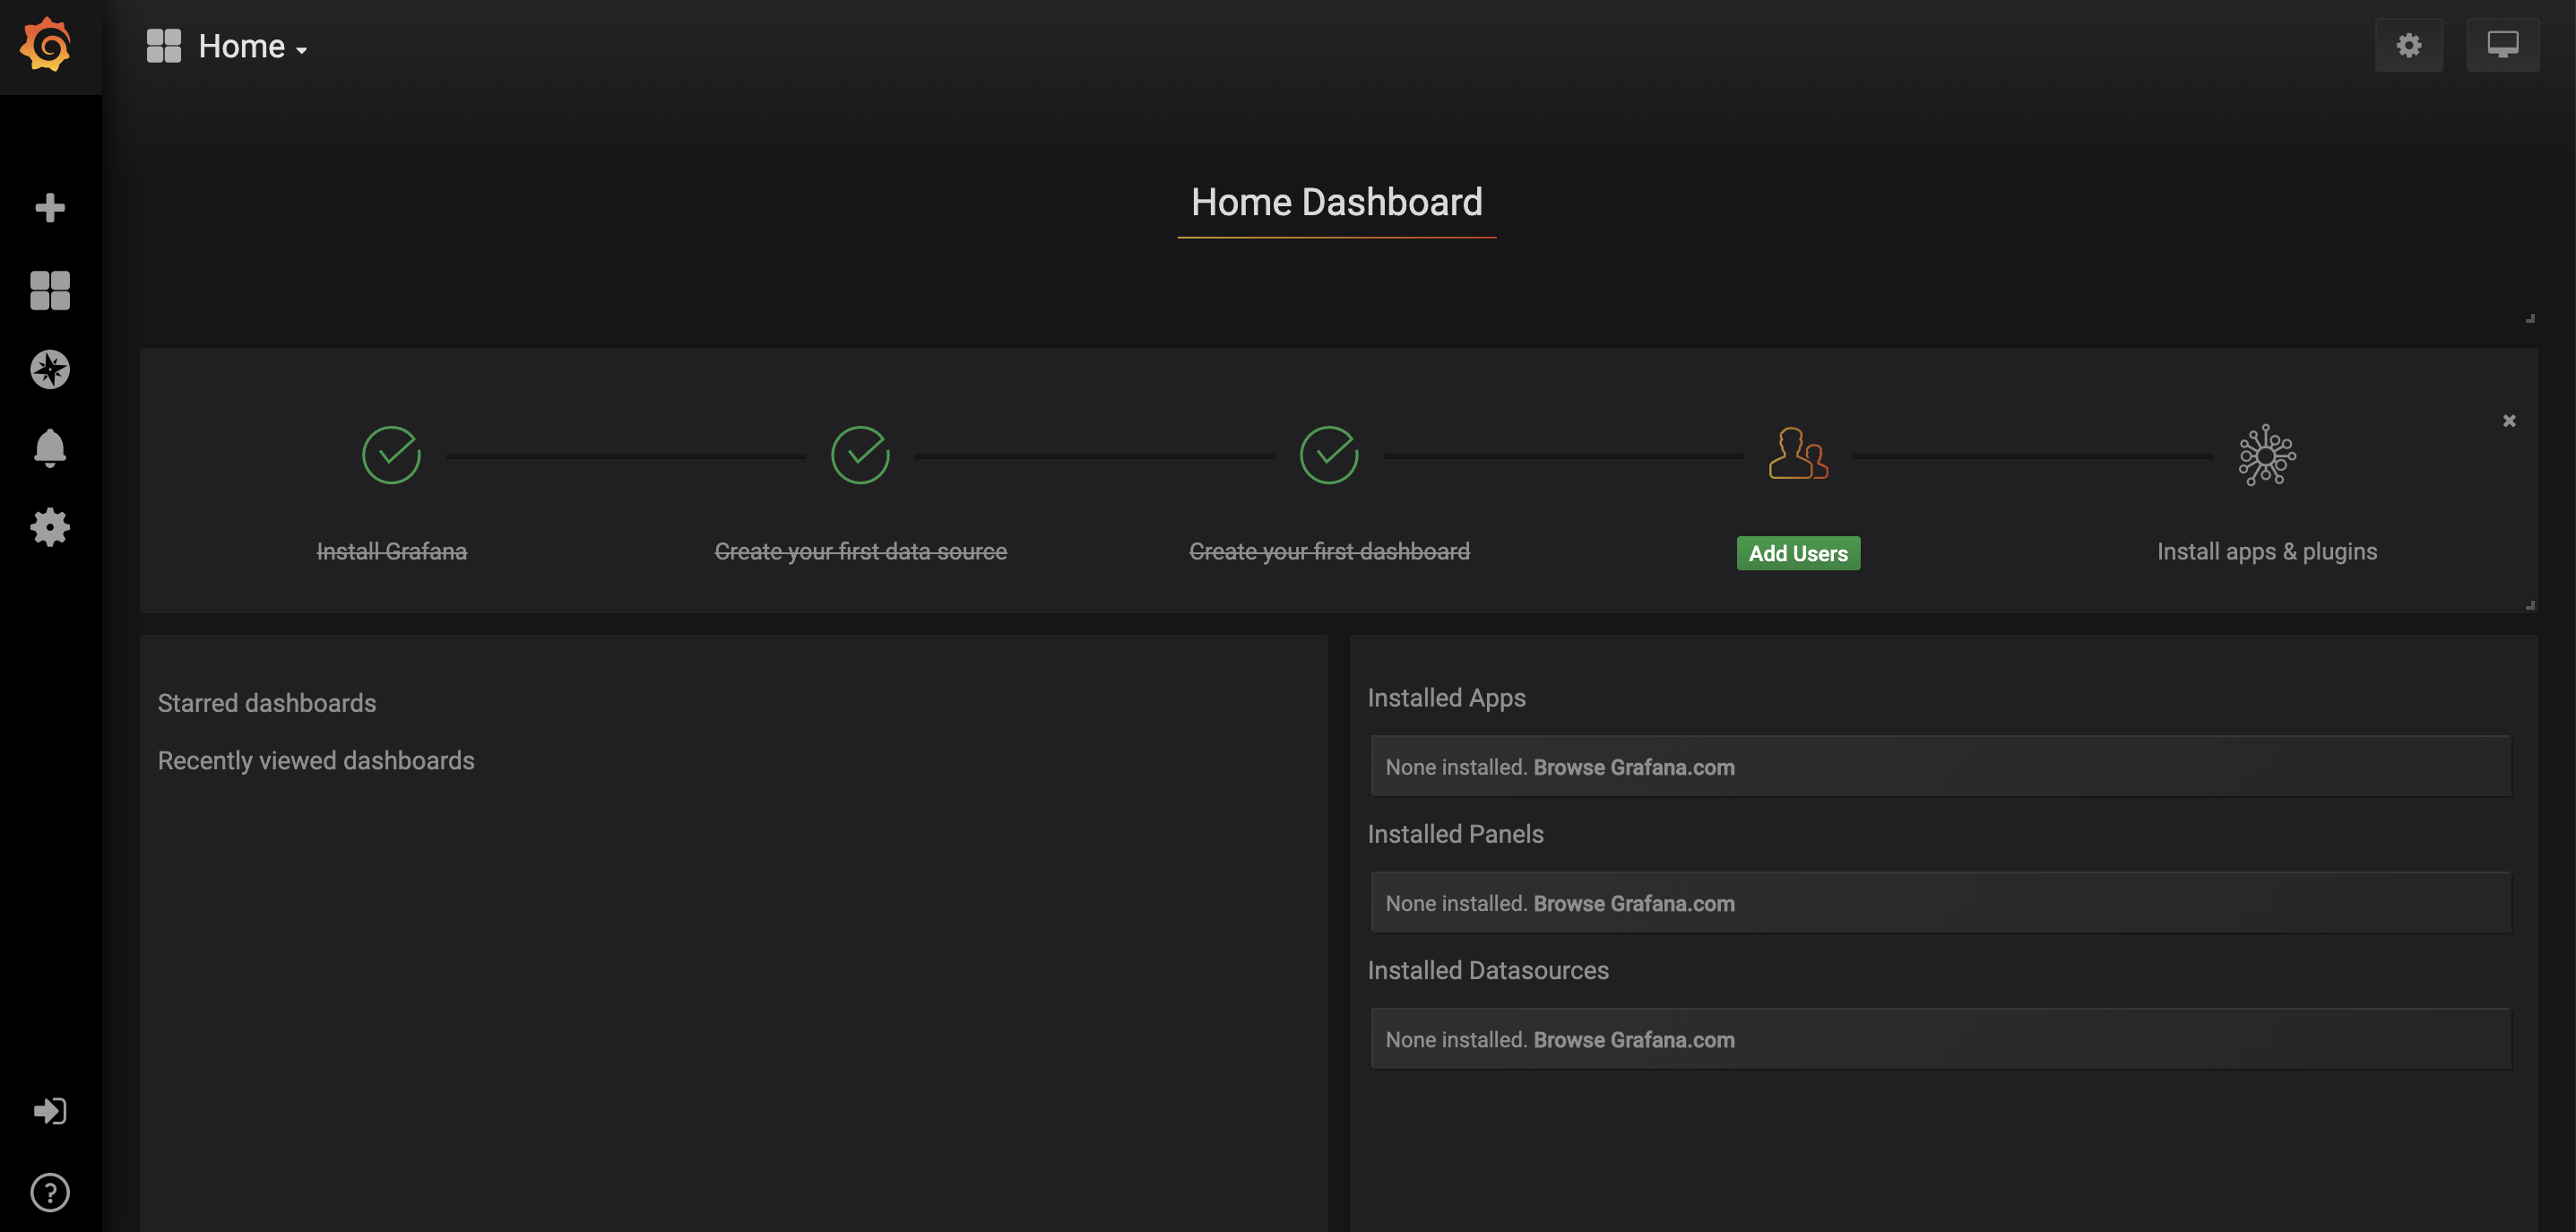 Grafana Home Dash